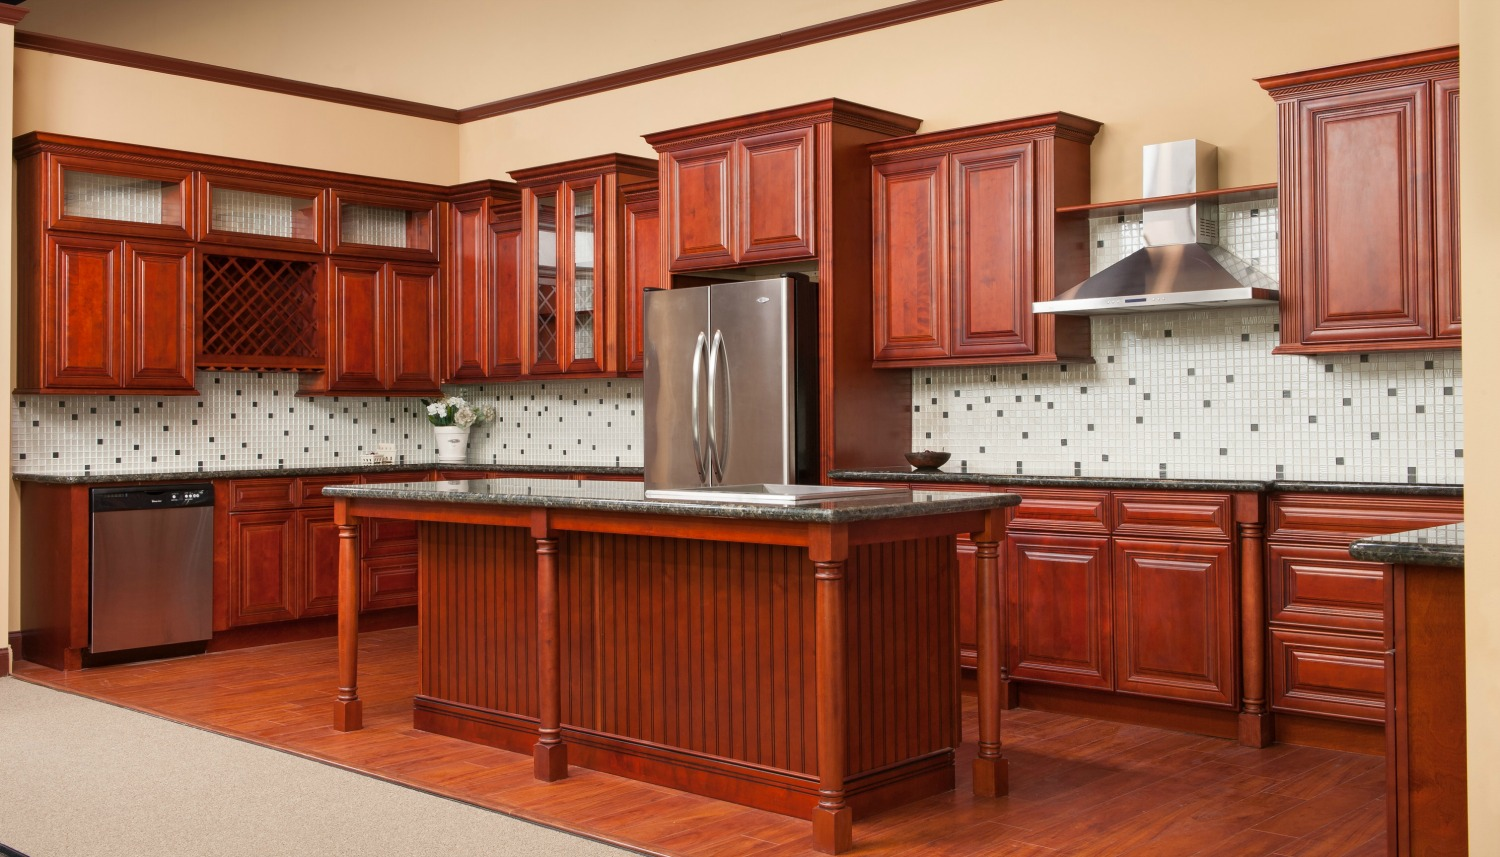 Kitchen cabinets rta shipping oak color ideas traditional for All kitchen cabinets